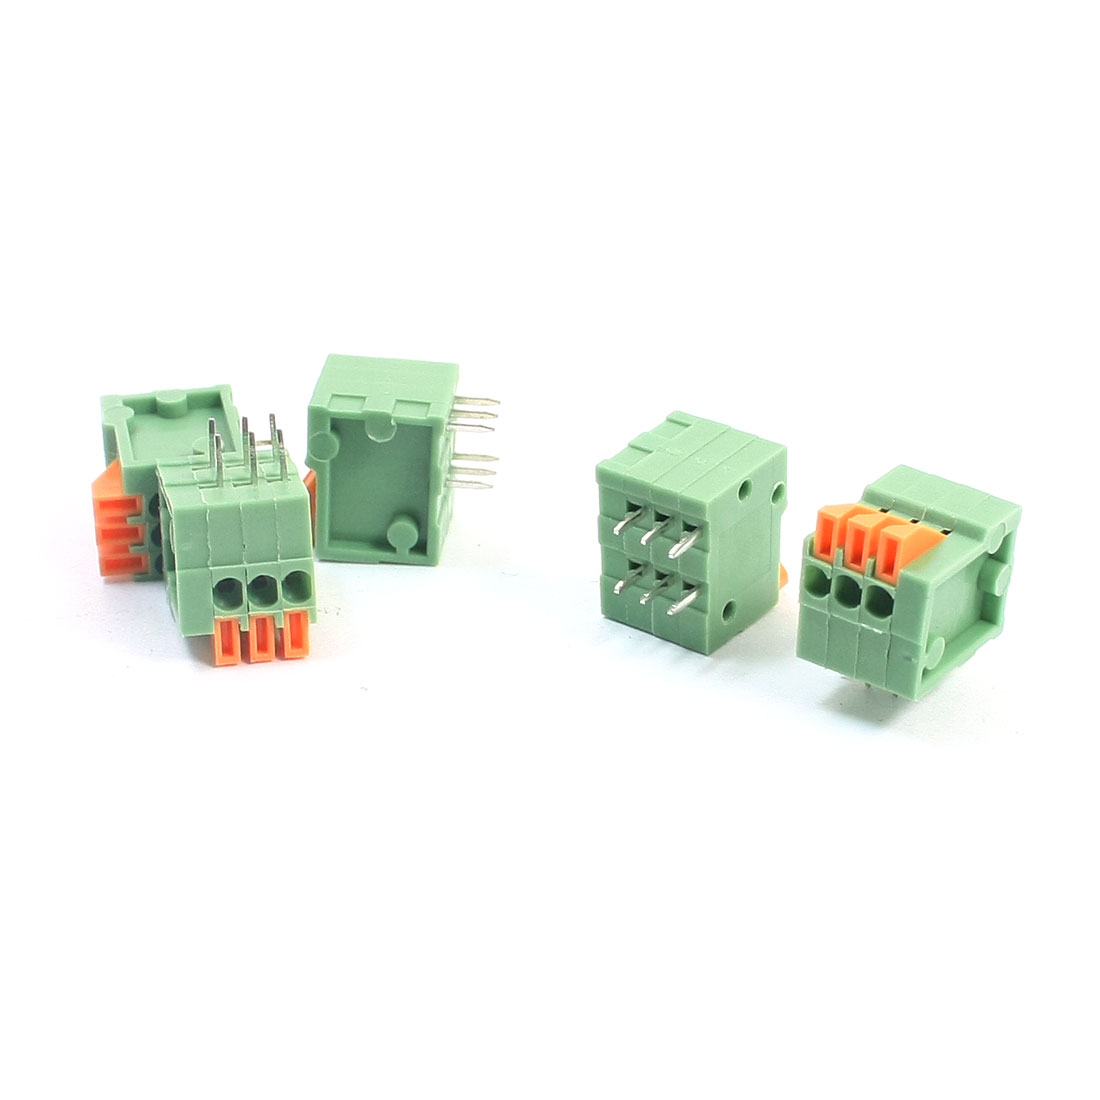 150V 2A 2.54mm Pitch 6-Pin DIP Pluggable Type PCB Mounting Screwless PCB Terminal Barrier Block Connector 5 Pcs